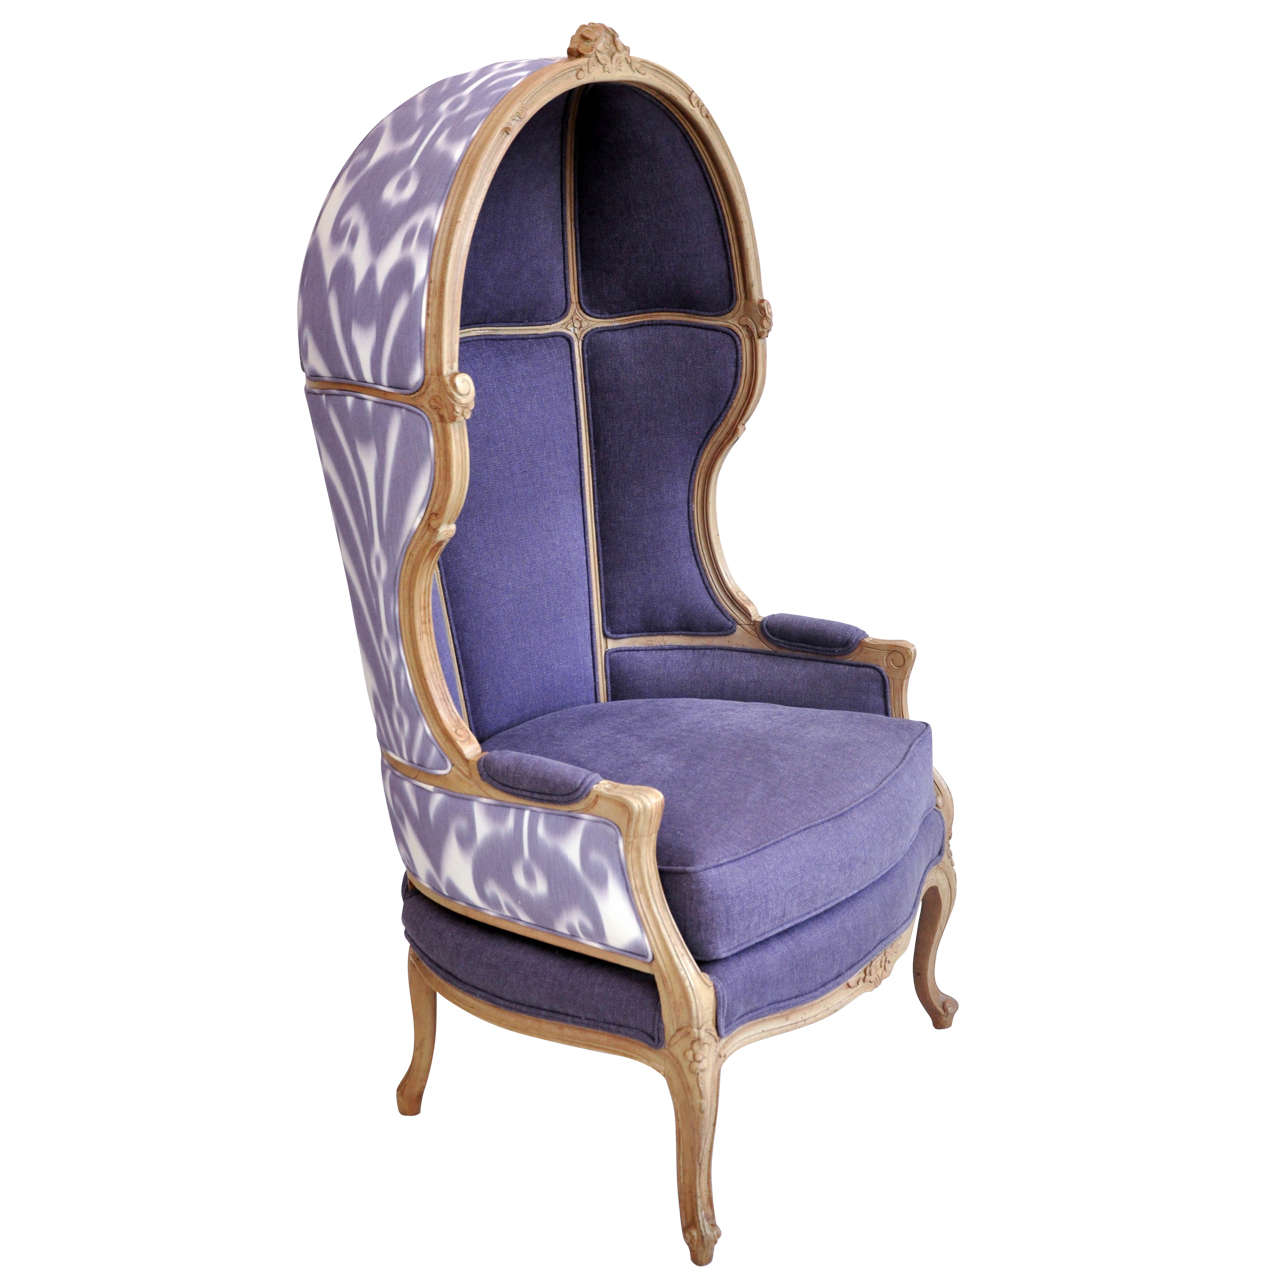 Antique Hooded Porteru0027s Chair For Sale